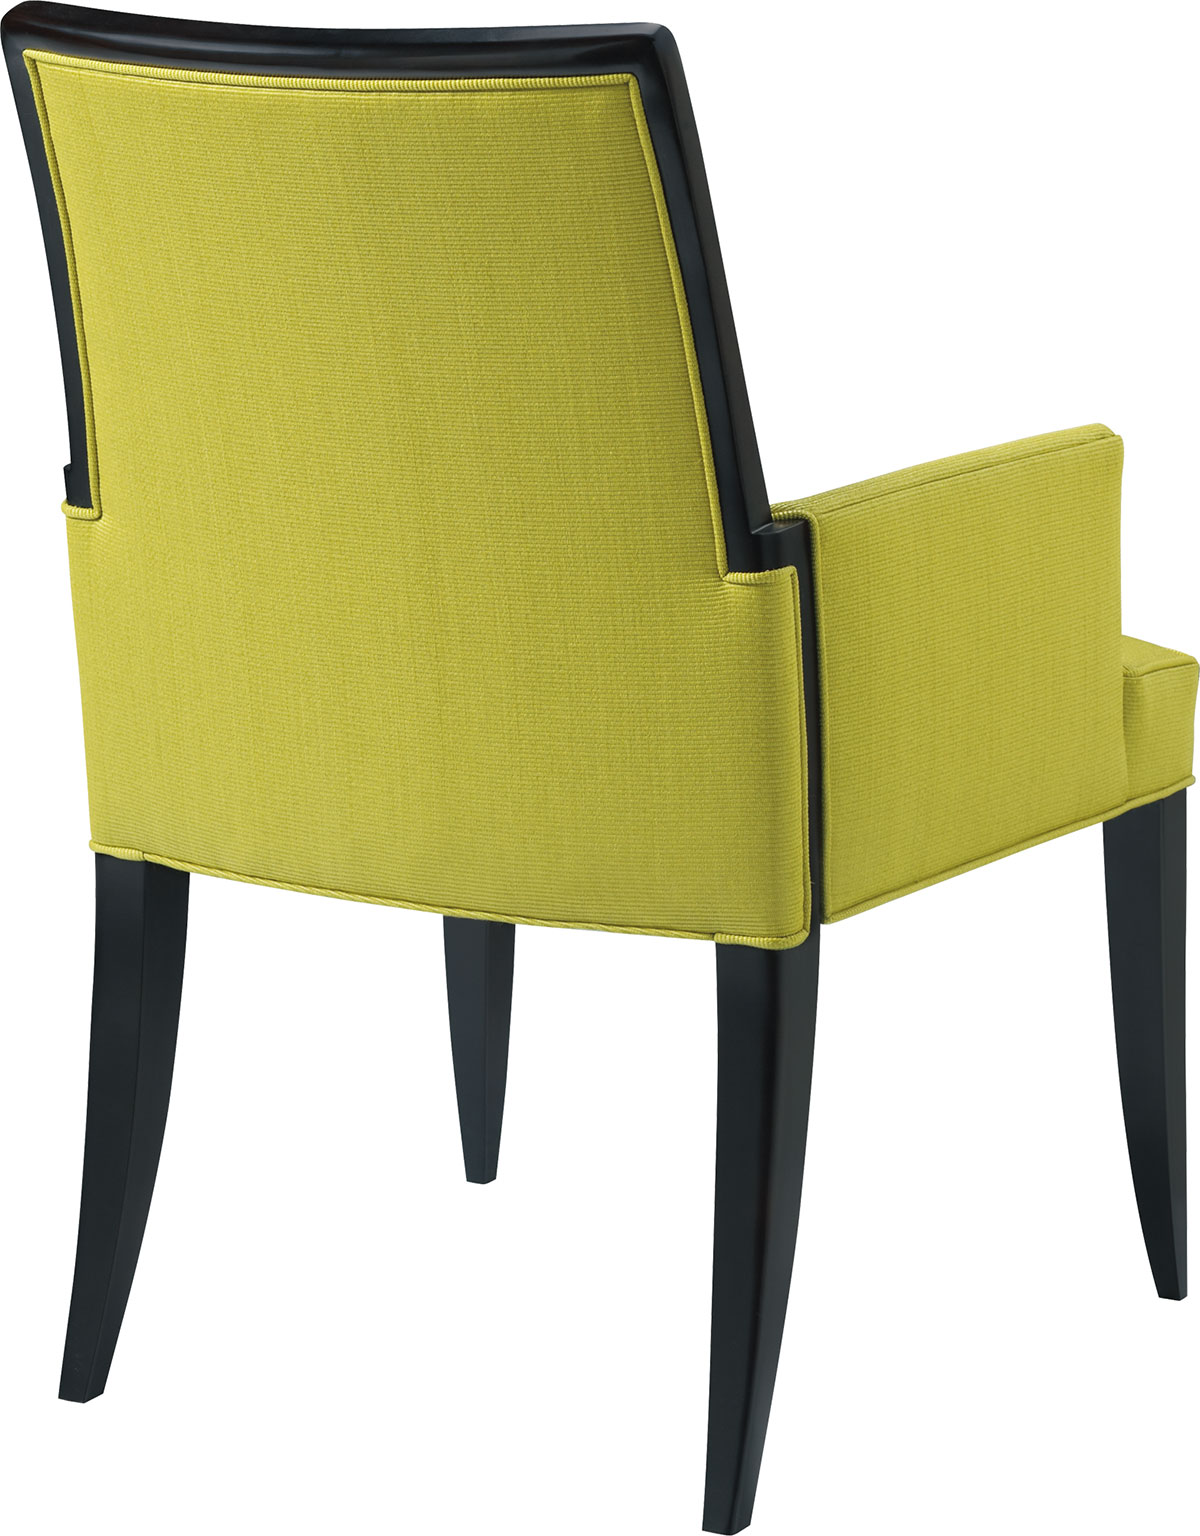 ABRAZO SIDE CHAIR & ARMCHAIR